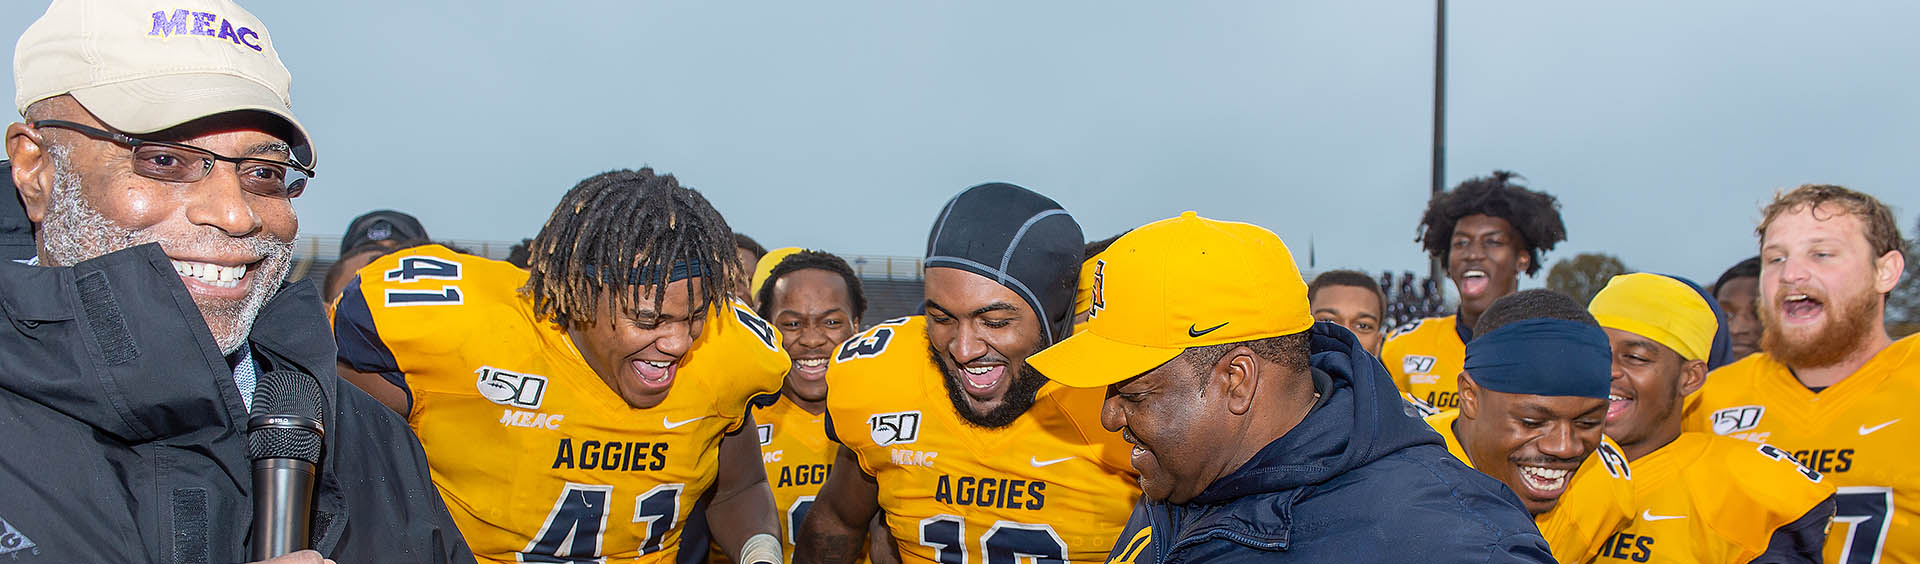 A&T Football team celebrating